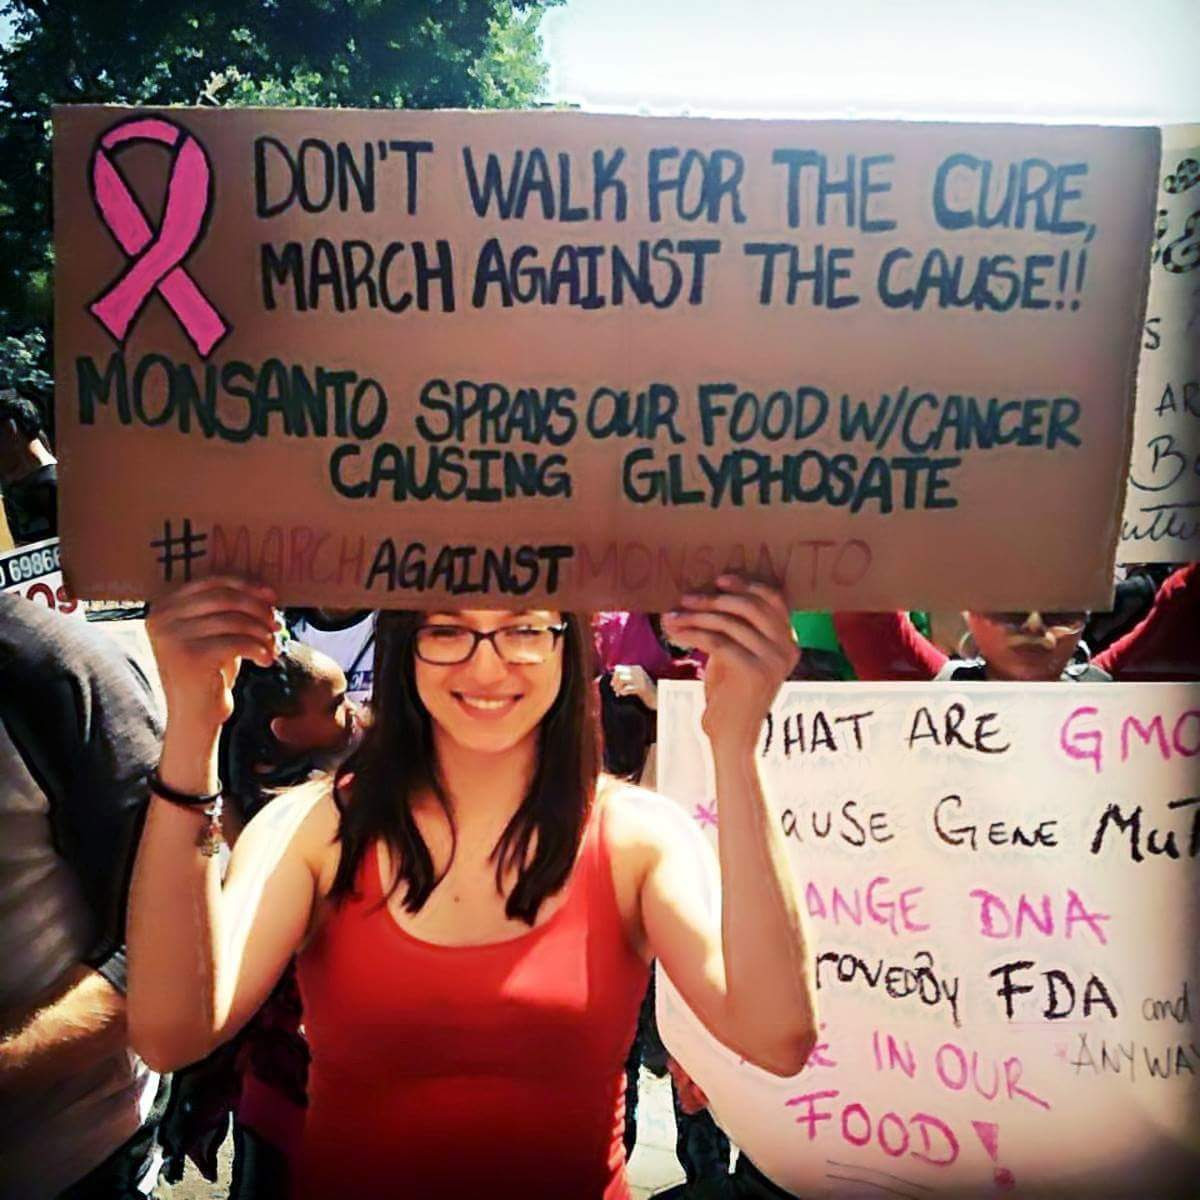 March Against Monsanto [Watch FREE] The Truth About Cancer Live Starts TODAY! 8fbb9d0a4bb30f6f29636f1b3079b4f8a4ad61e97d025967bc0a43a0baa948b5b692448e849b8a876622f5f3fb4e7eba6d91f04d29402672b6fc9806bb1fc408